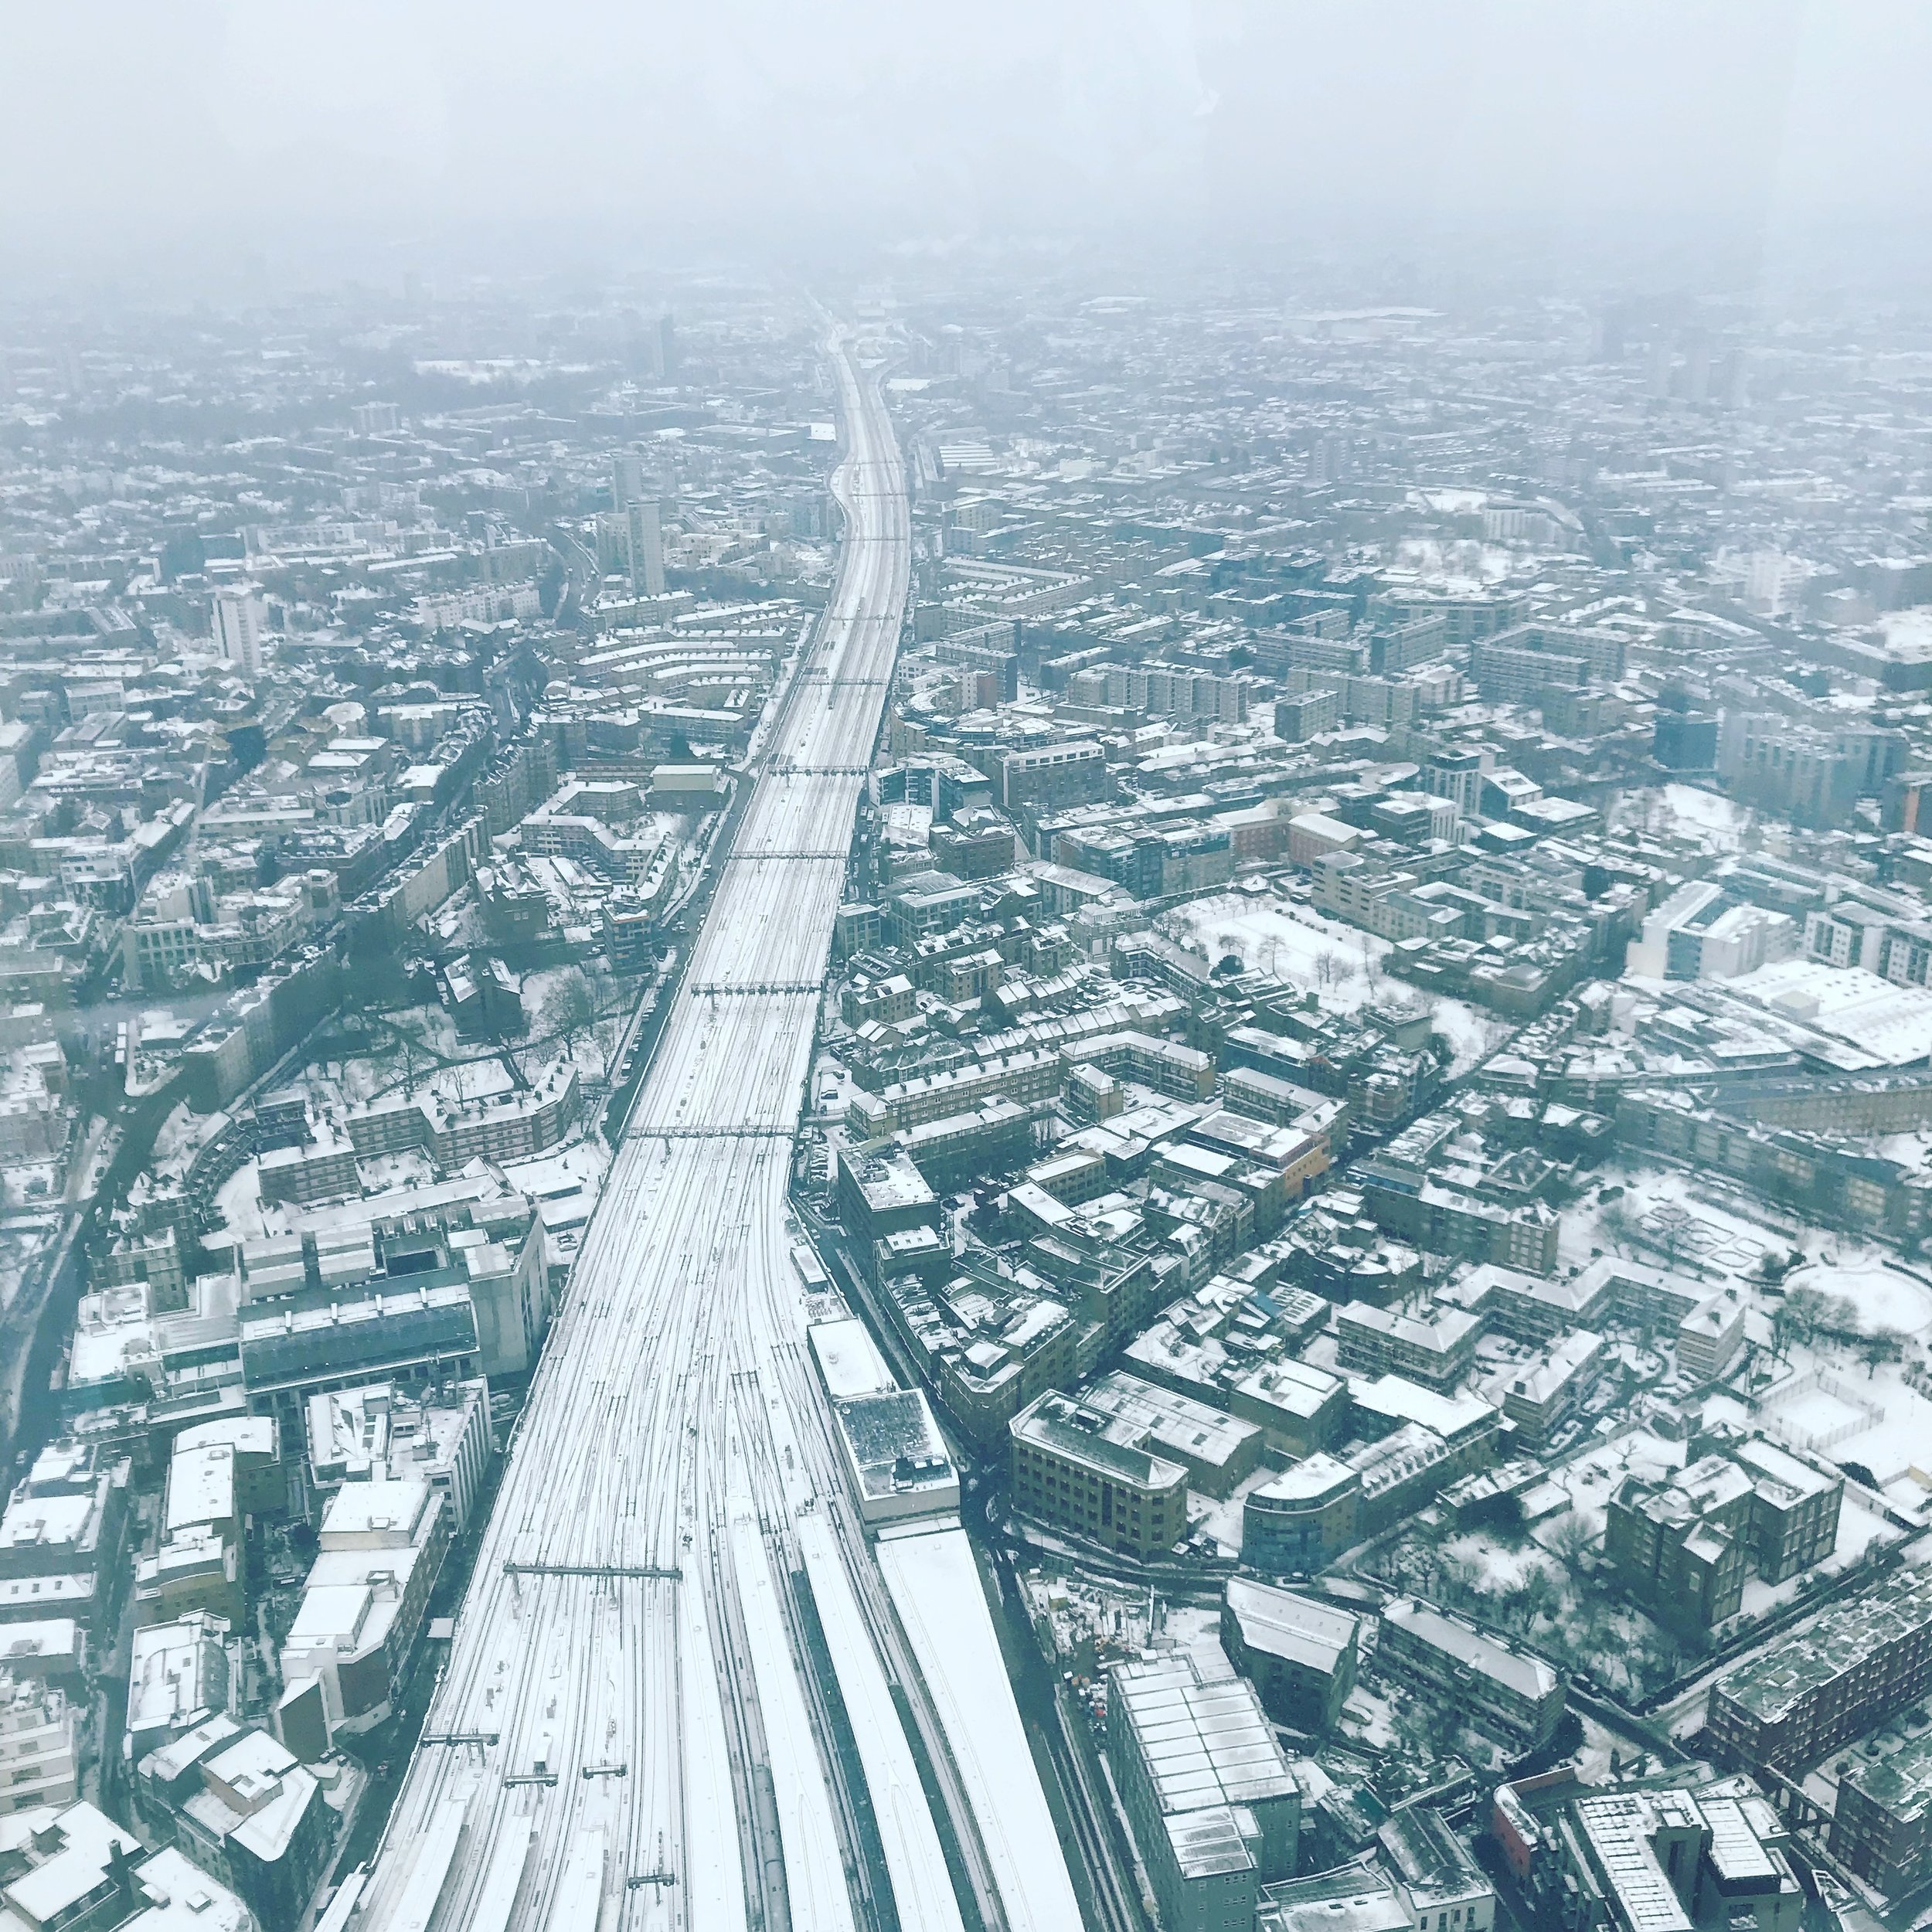 An aerial view shot of the snowy city from the Shard